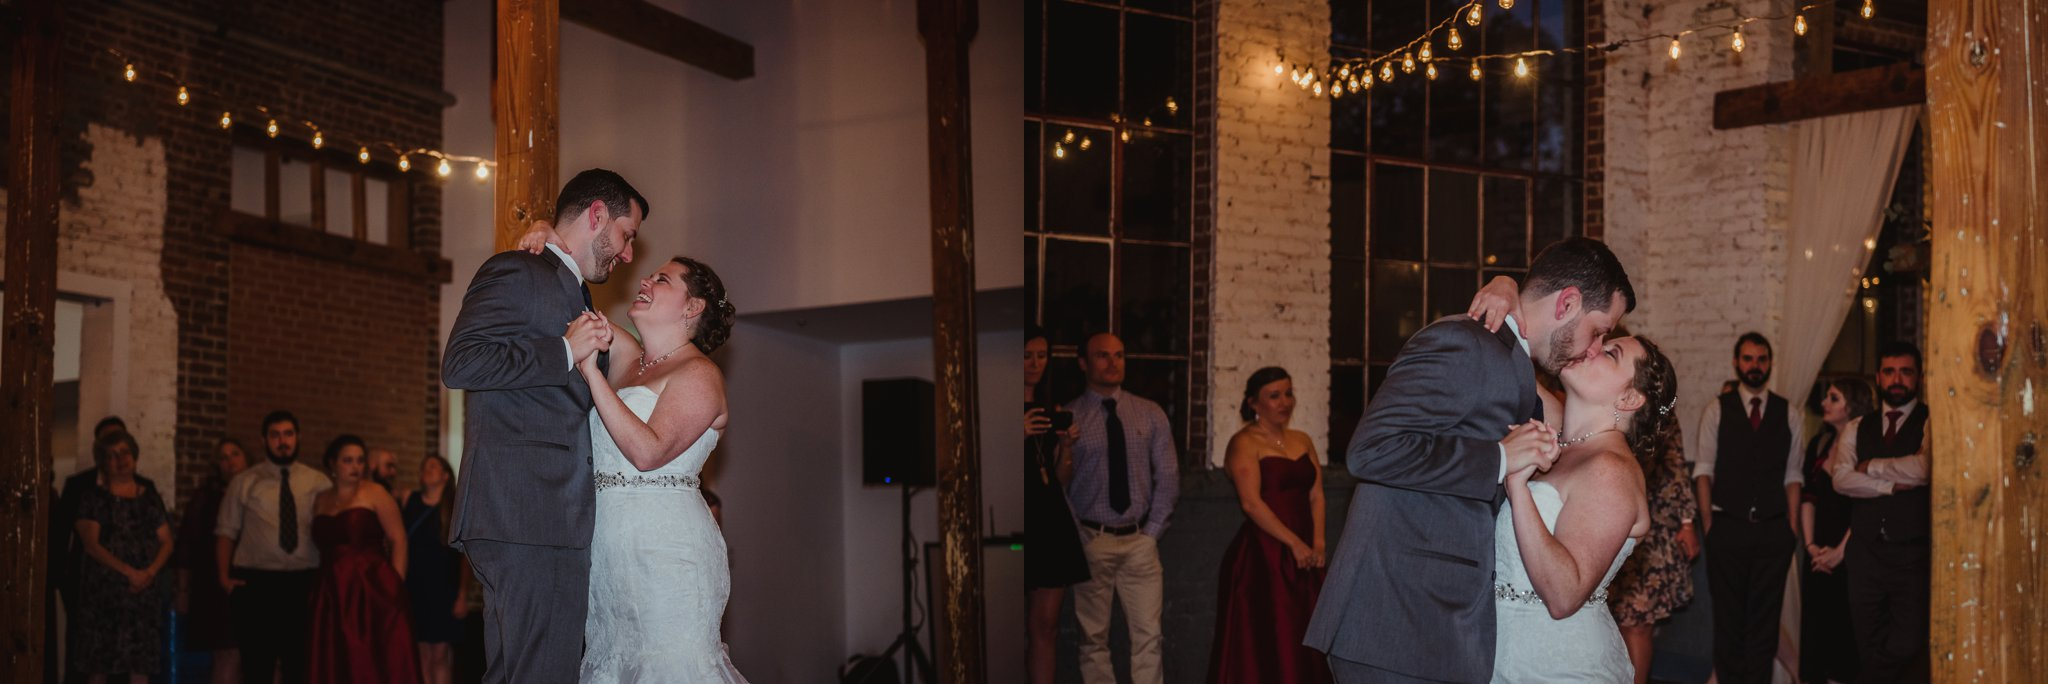 The bride and groom danced their first dance at their wedding reception in Raleigh, North Carolina, pictures by Rose Trail Images.